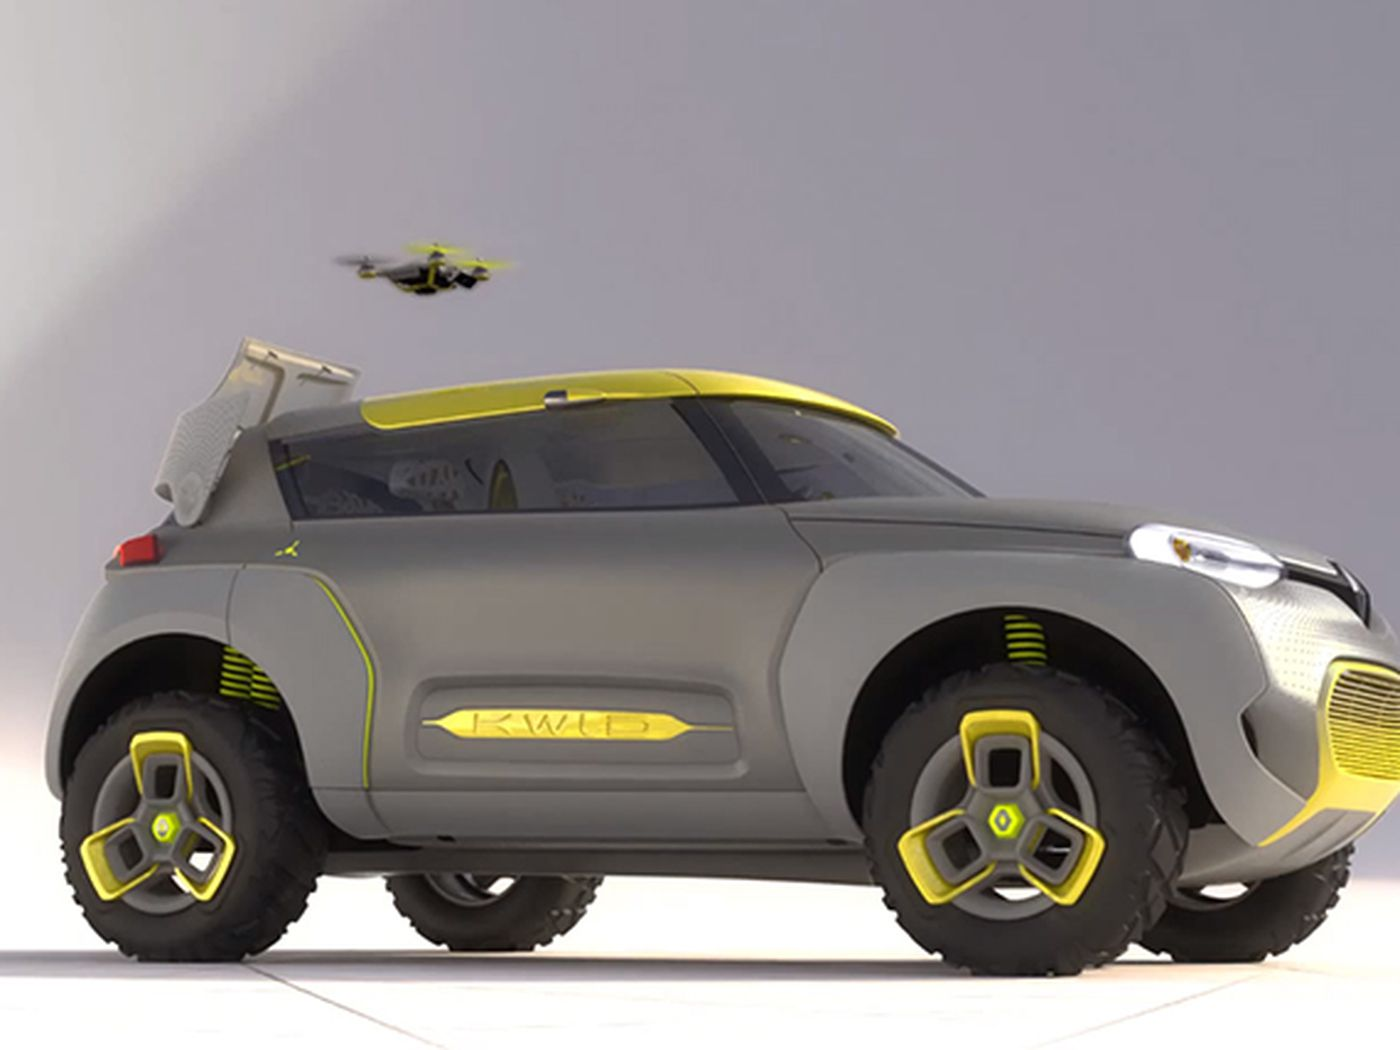 Renault Concept Car Launches Drone To Check For Gridlock Ahead The Verge